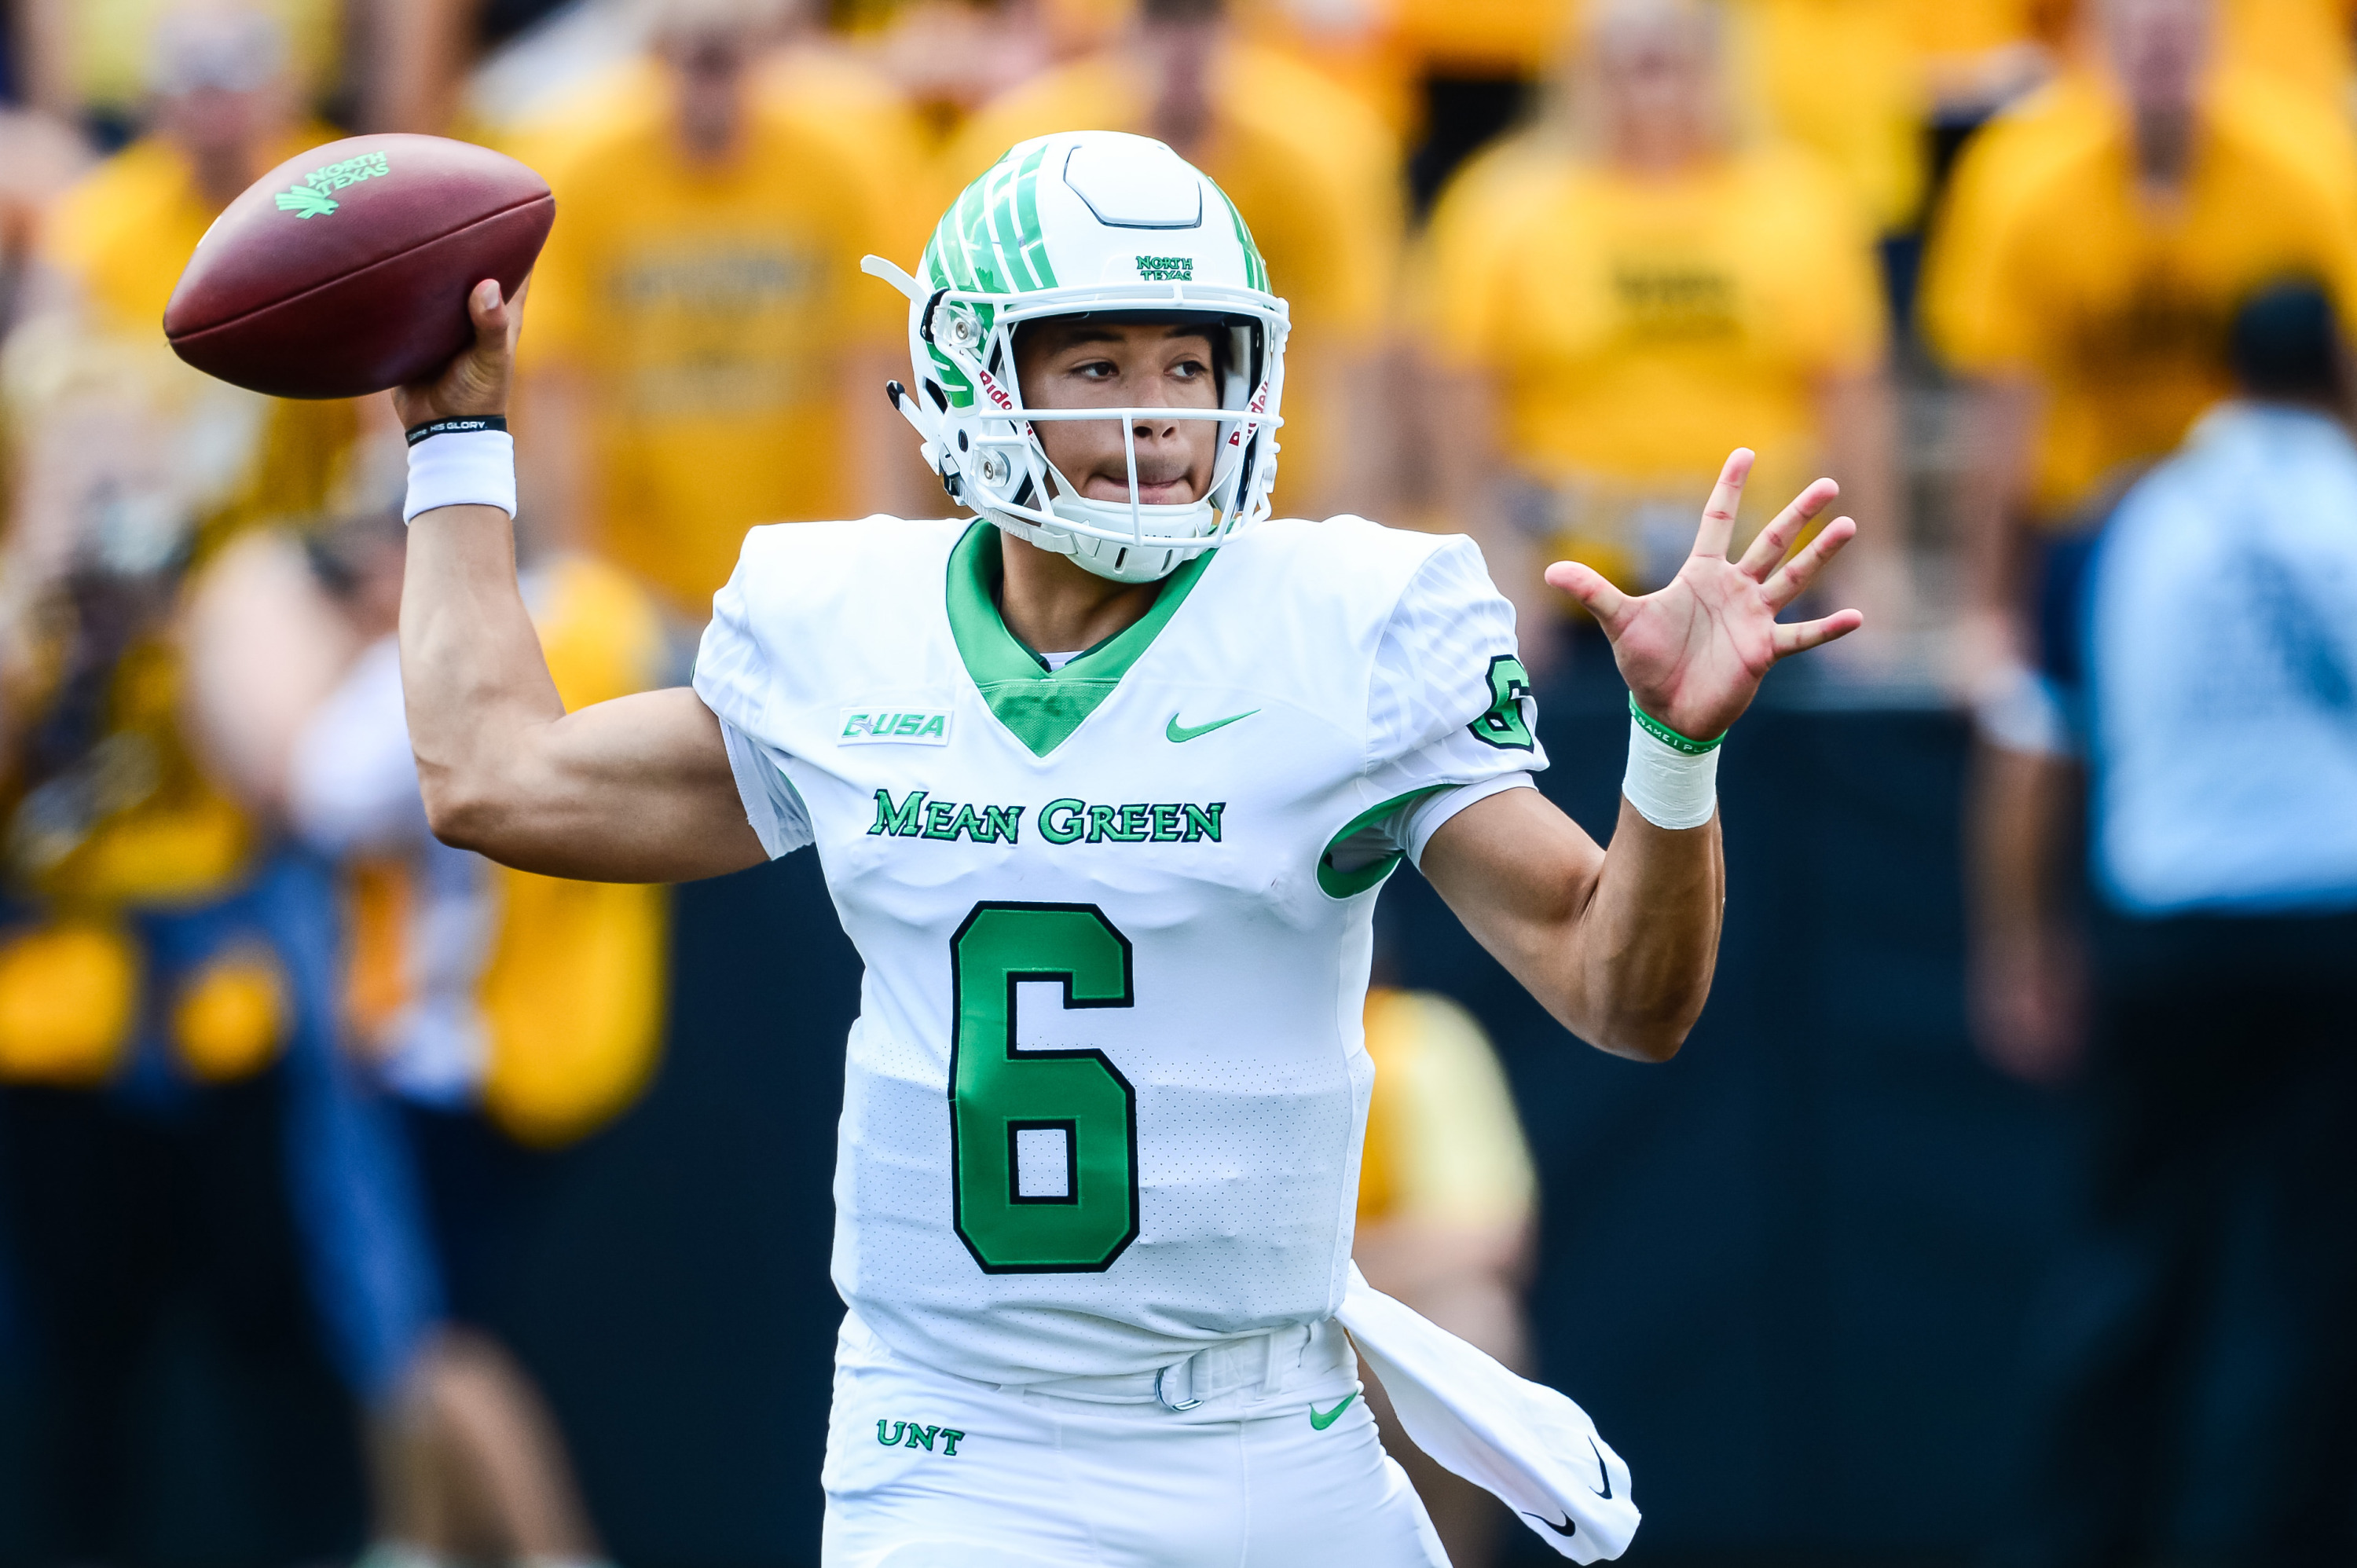 sale retailer 92a76 d27ed Mean Green Set For Spring Game Saturday - University of ...